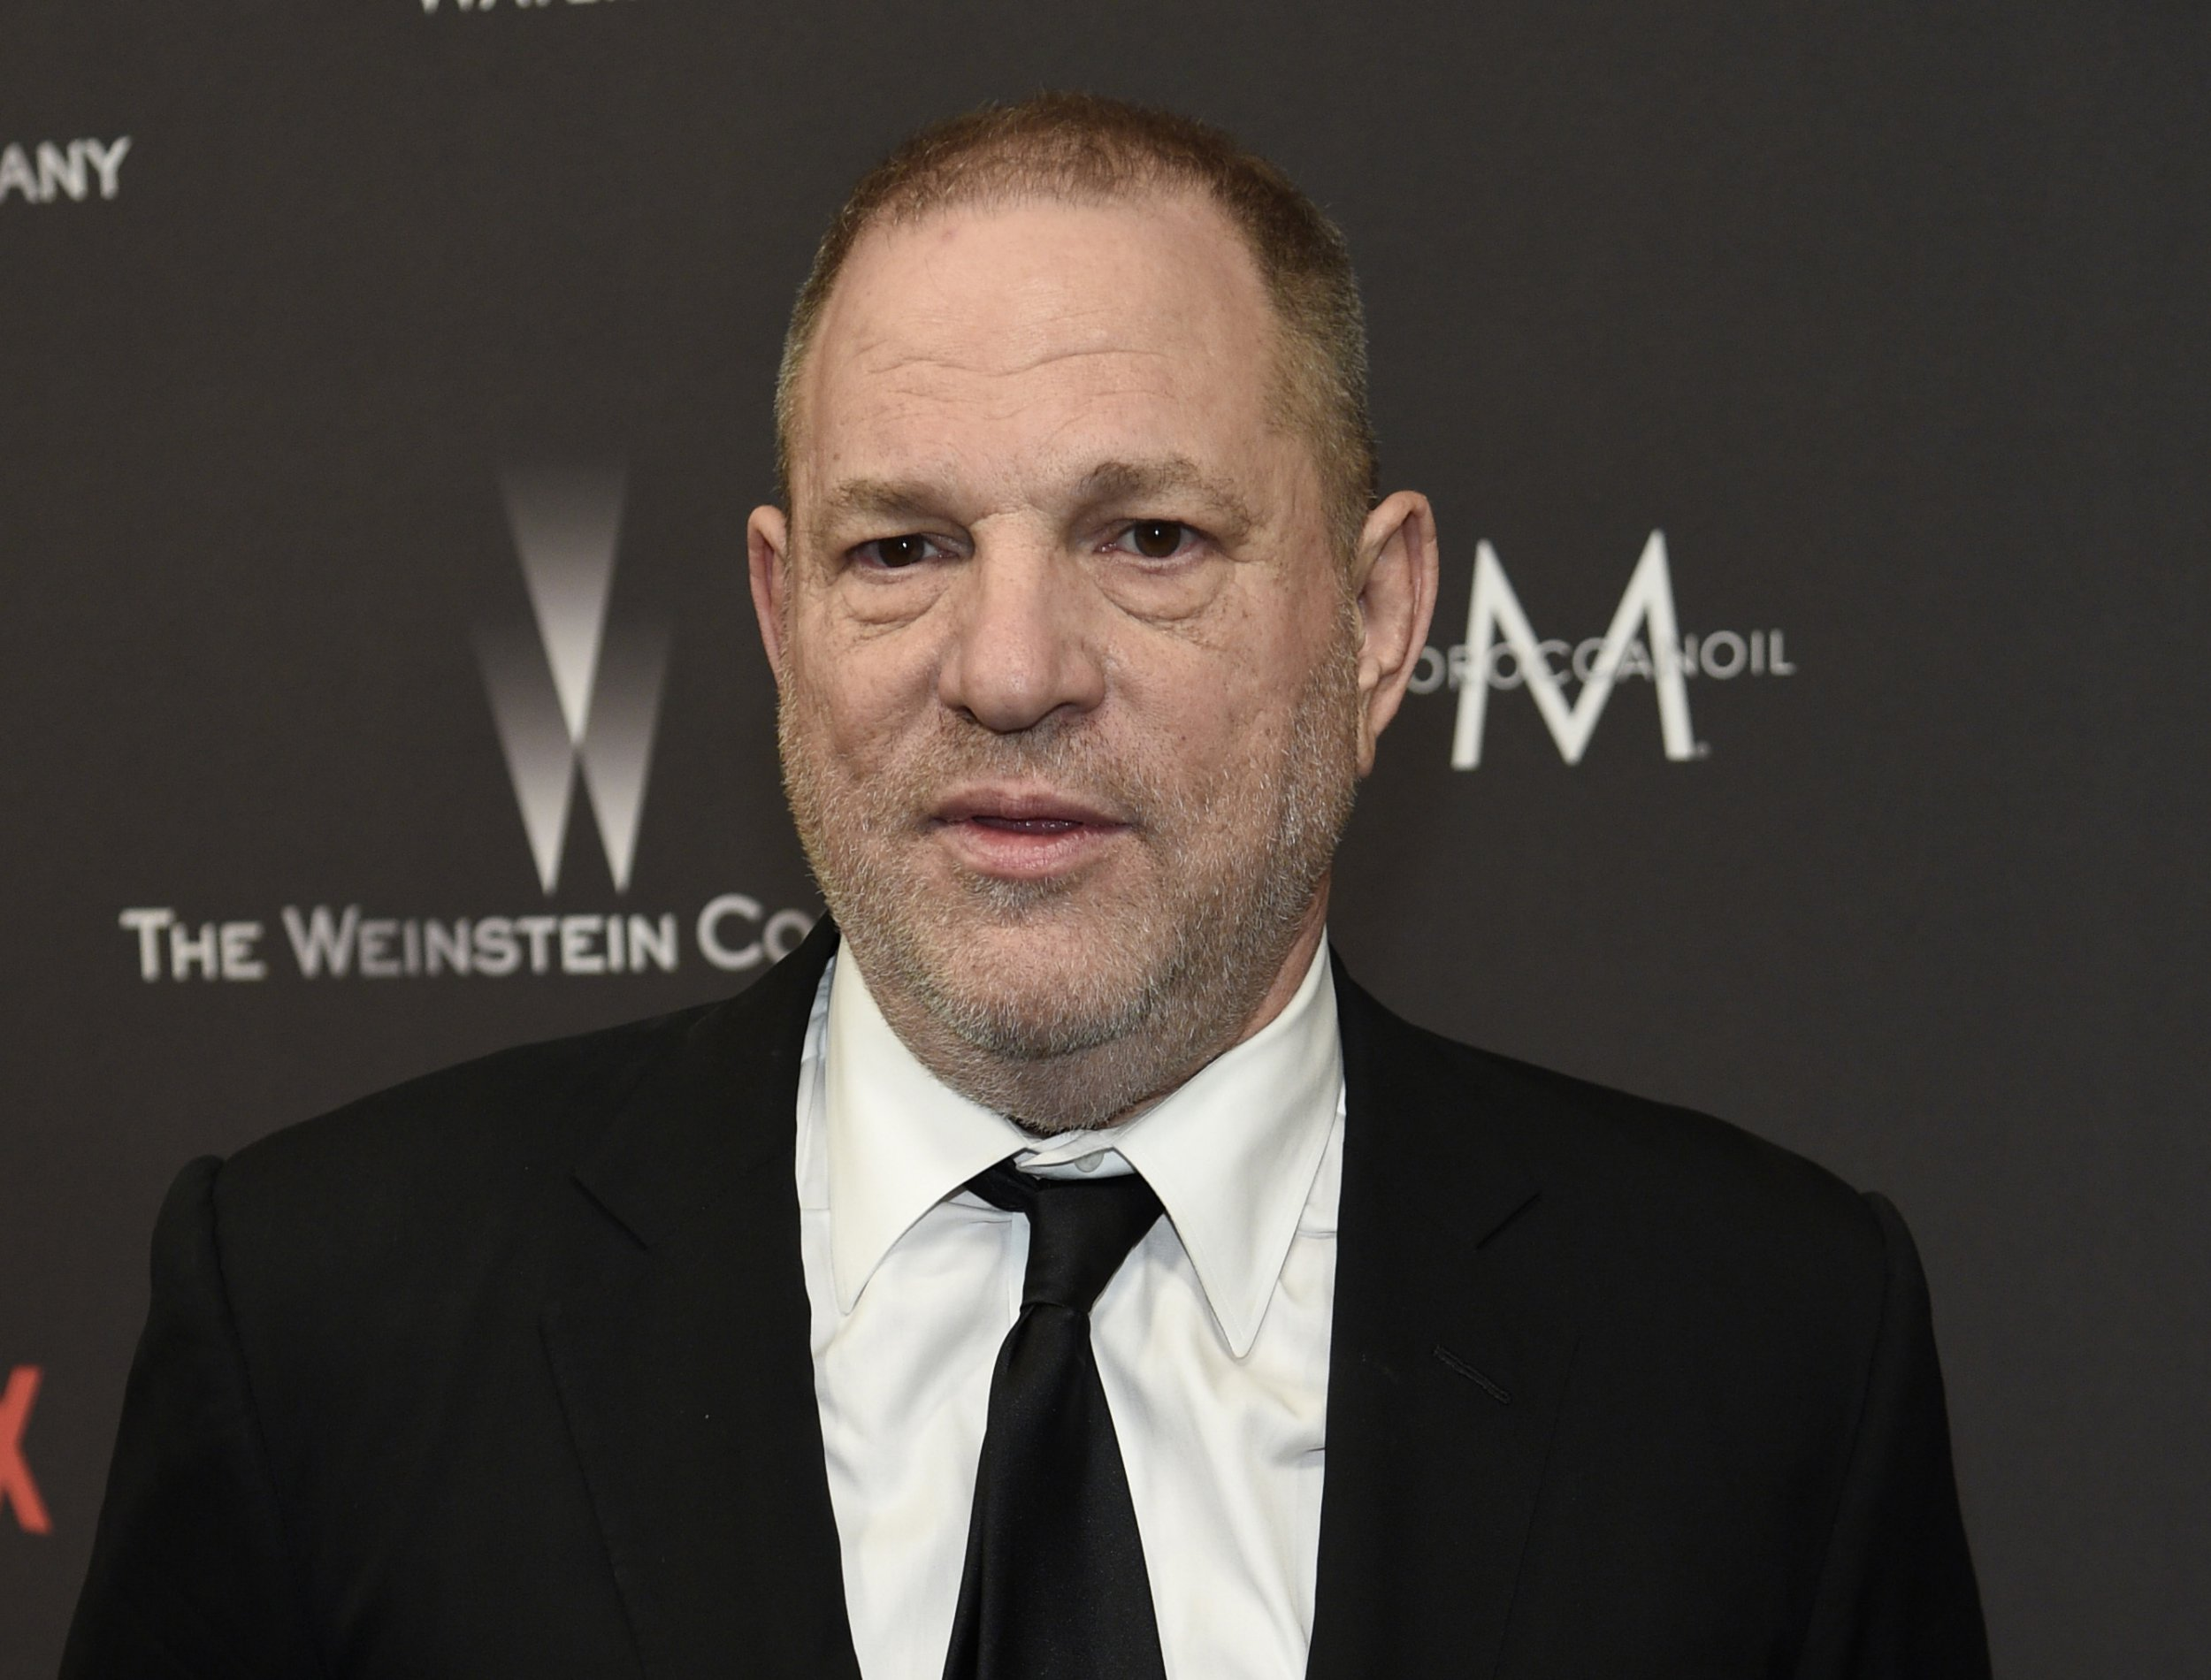 Harvey Weinstein 'to return to making brilliant films' after sexual assault allegations